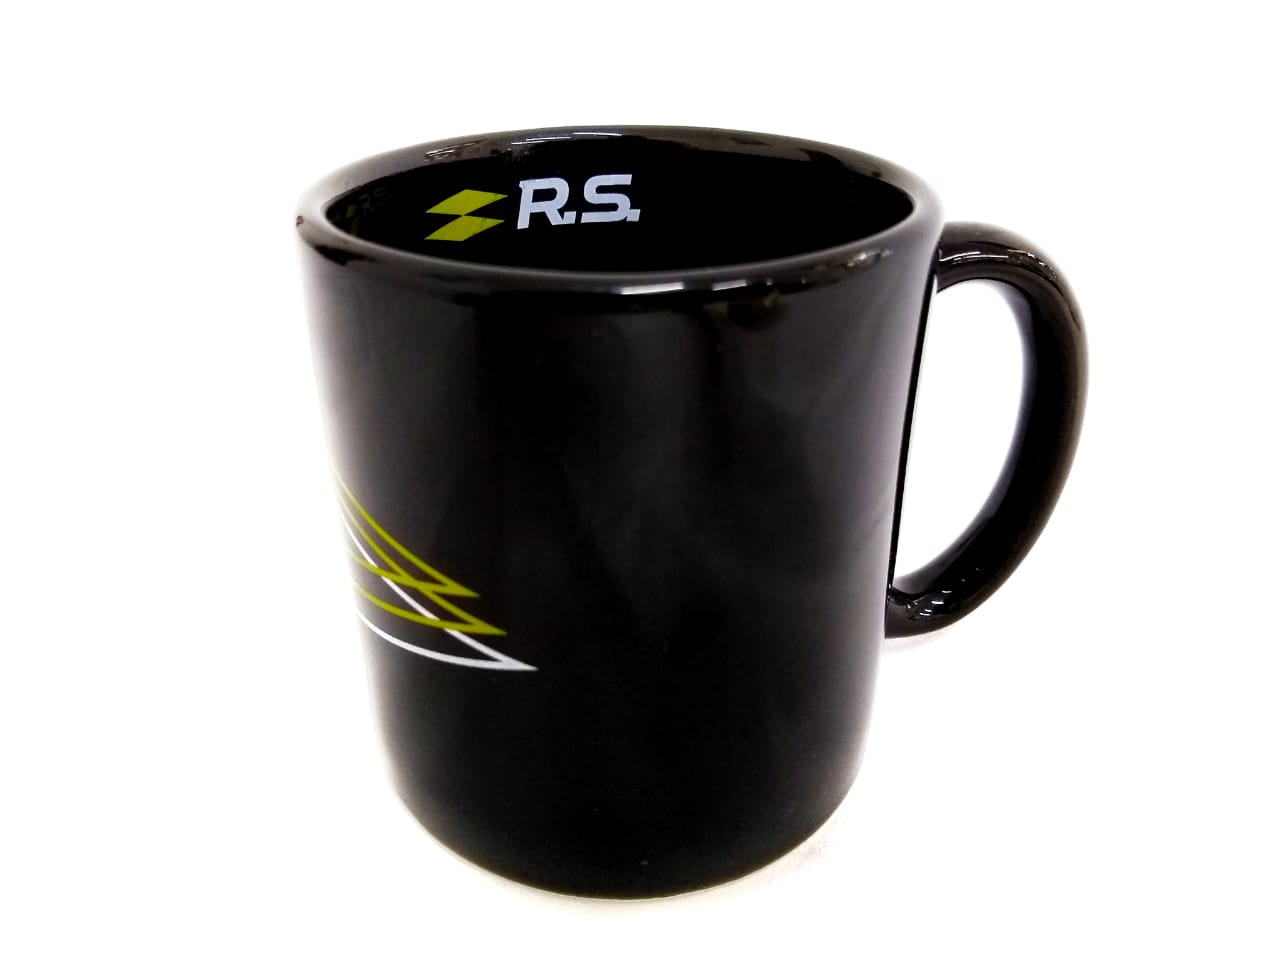 Caneca New Graphic Rs - Caneca - Preto - Pc - Sku: 771173353